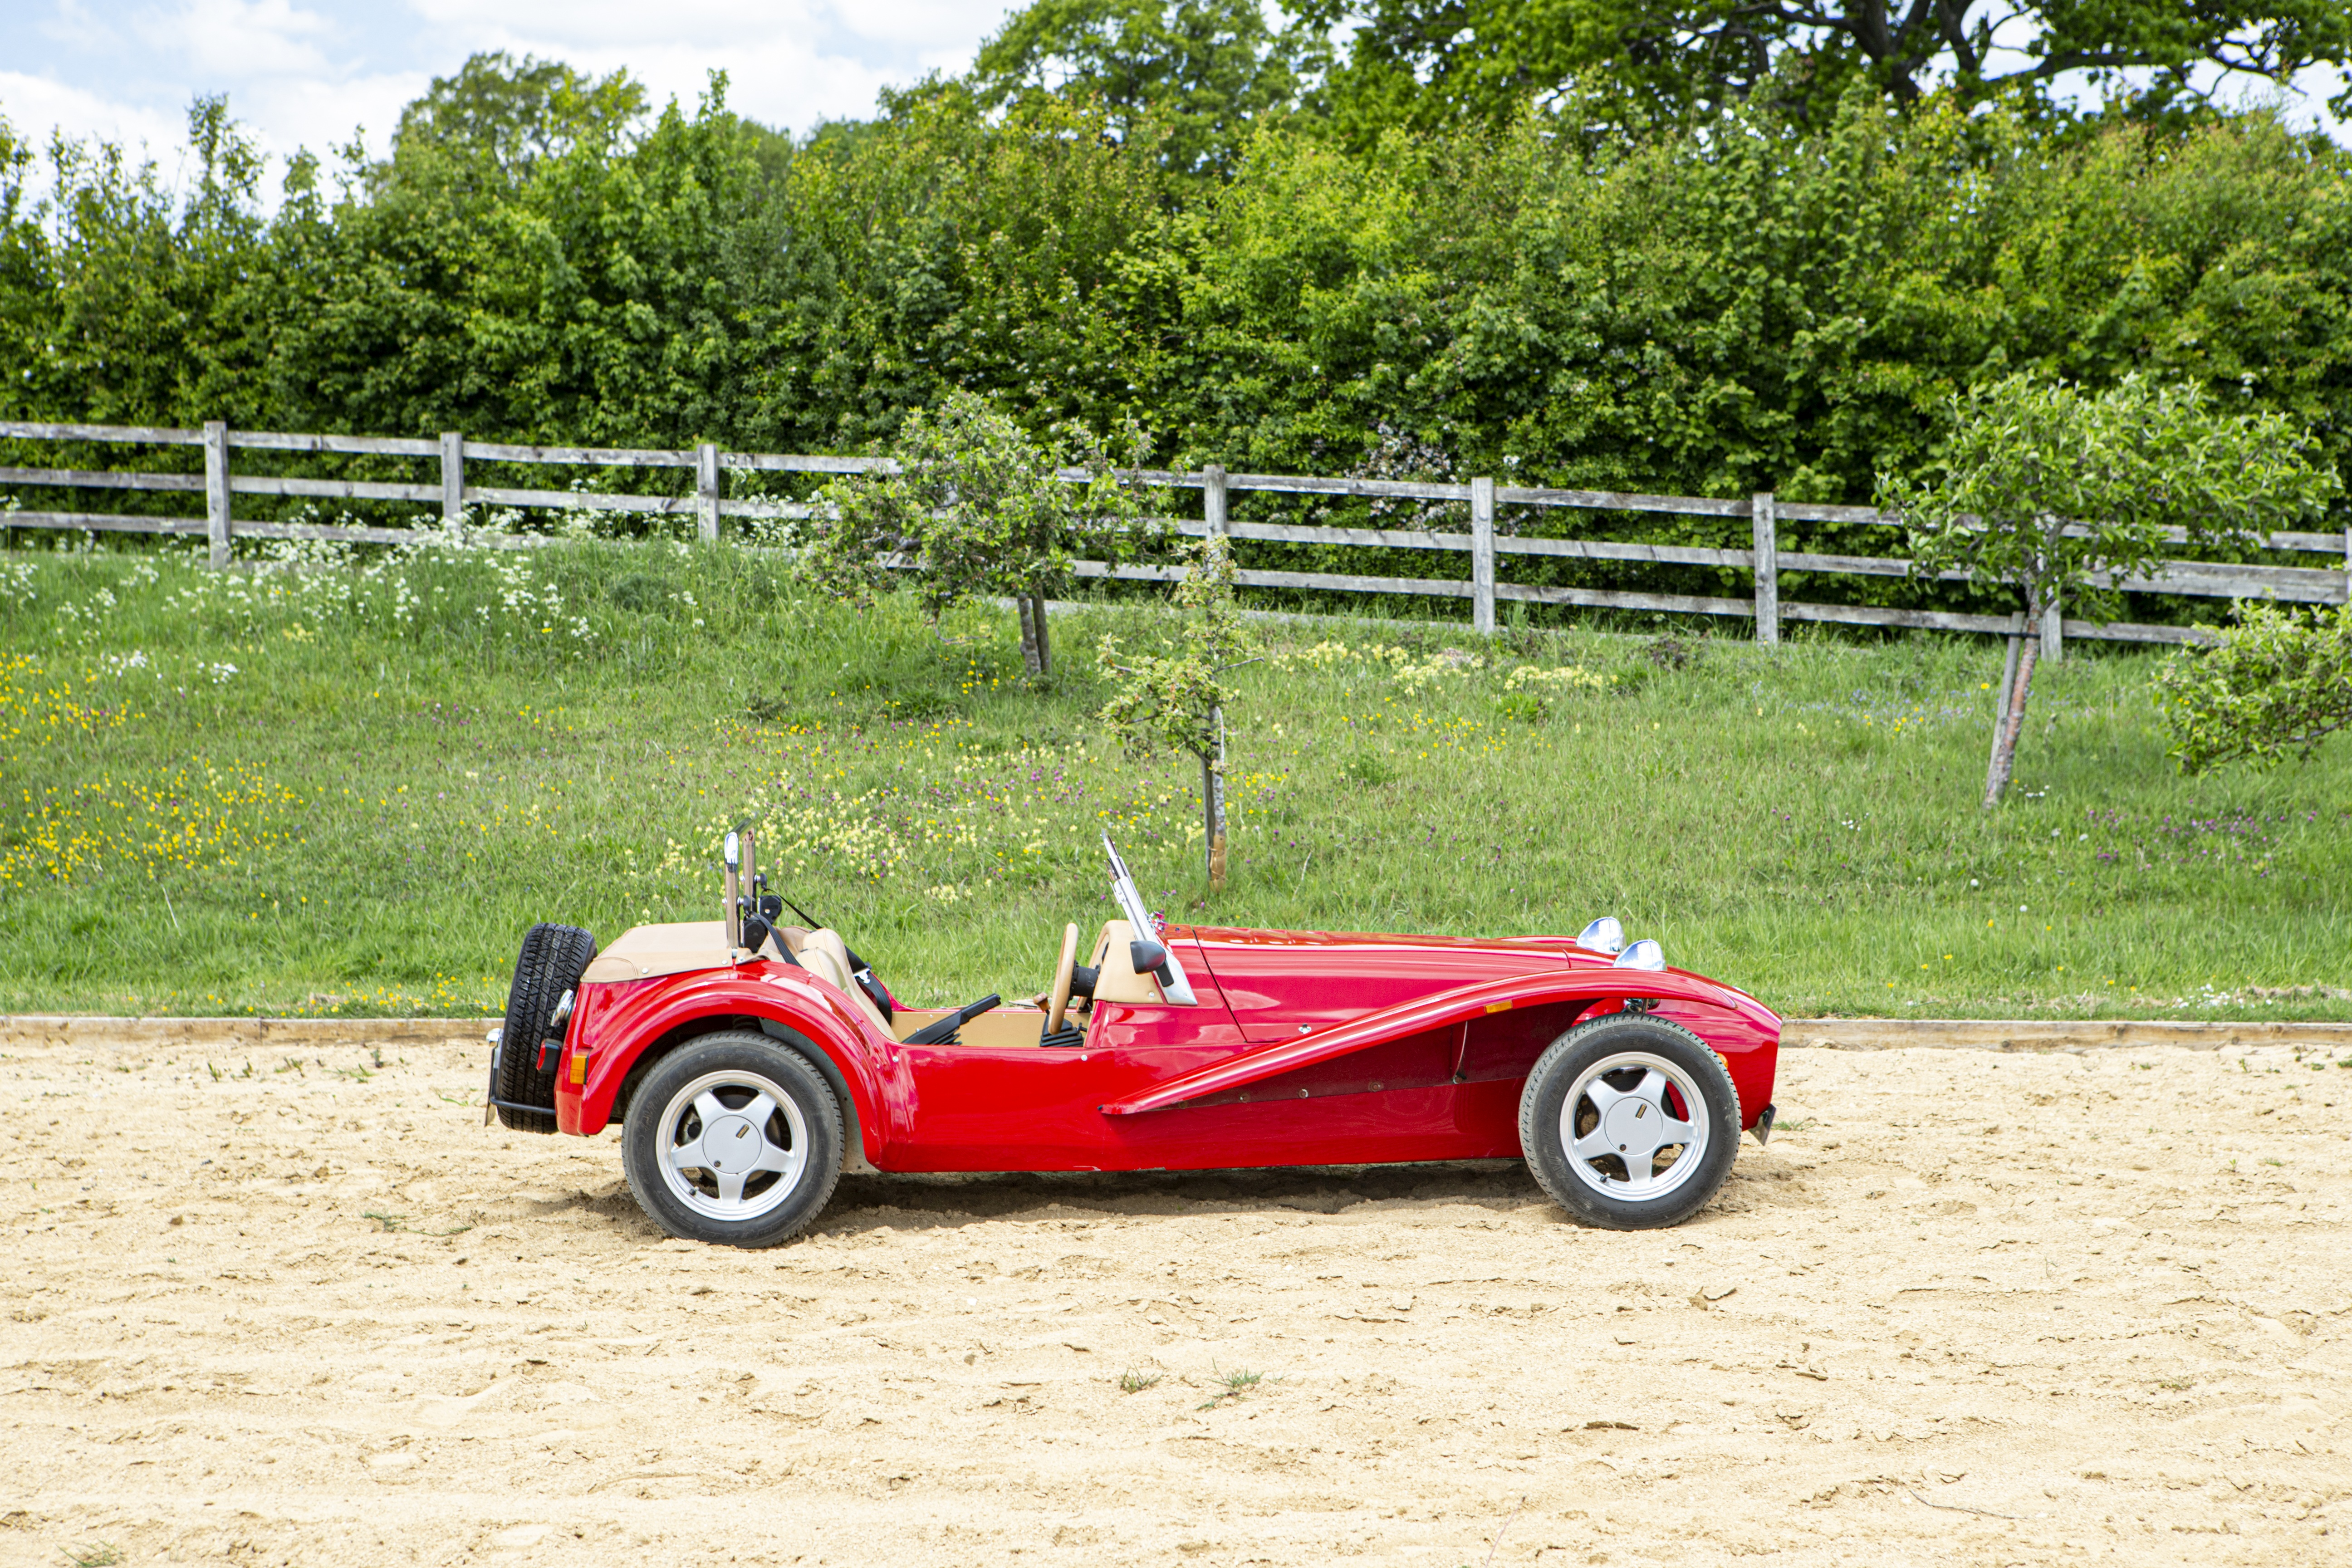 Lot 67 - 1992 Westfield Chassis no. 92WS1208